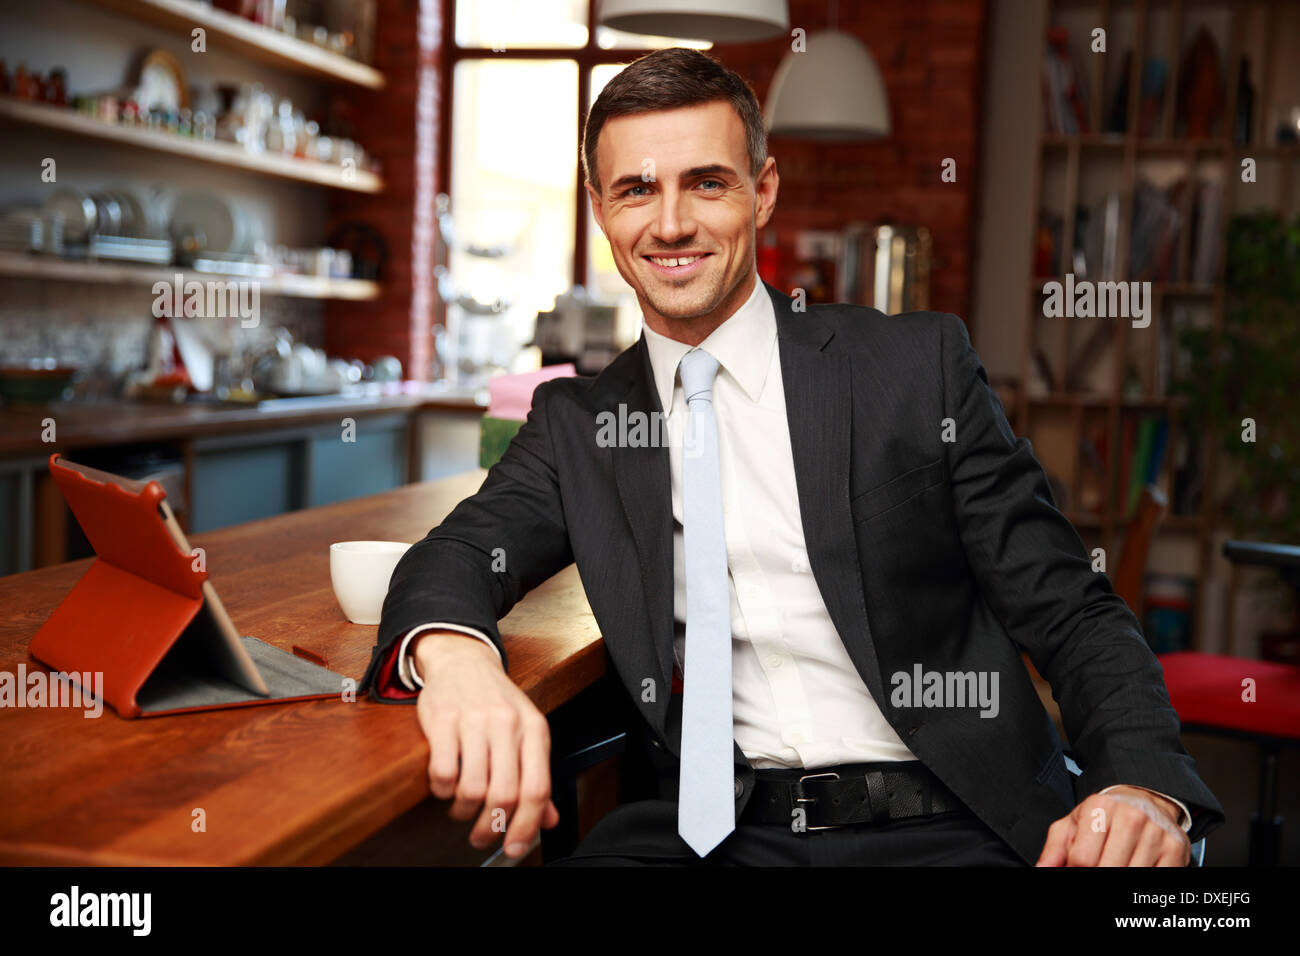 Happy businessman in formal cloths drinking coffee and reading news in the kitchen - Stock Image